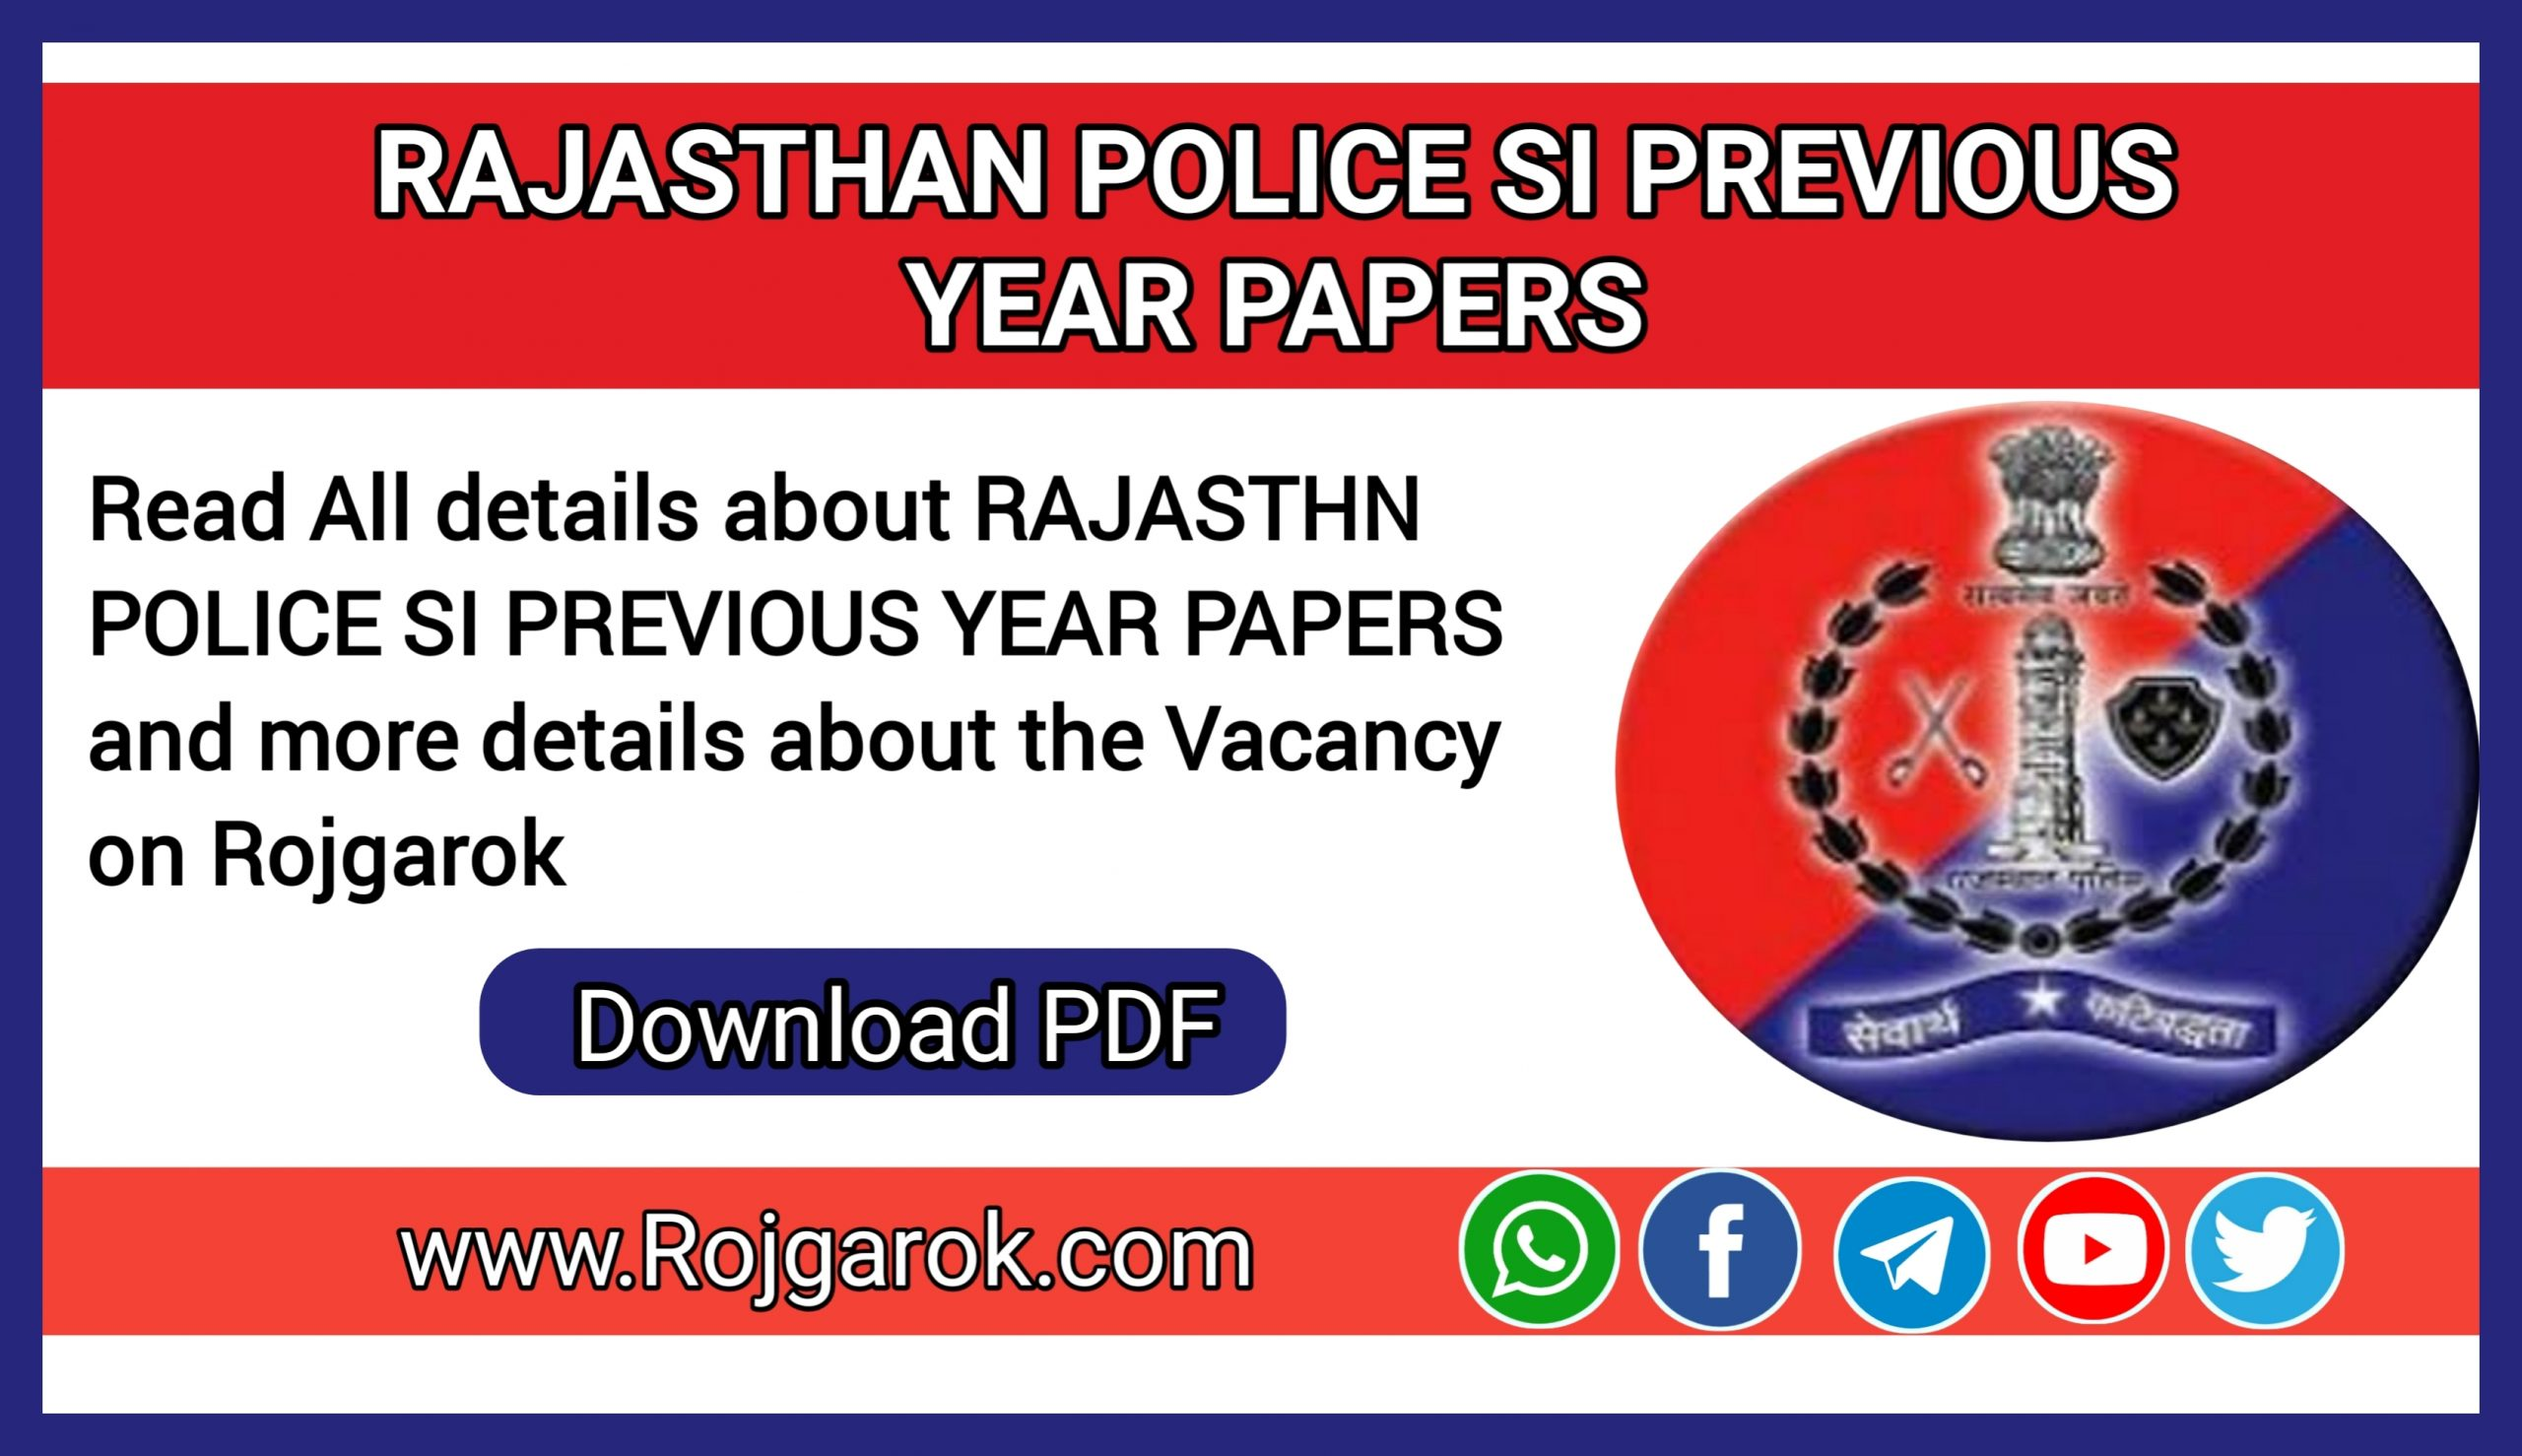 Rajasthan Police SI Previous Year Papers